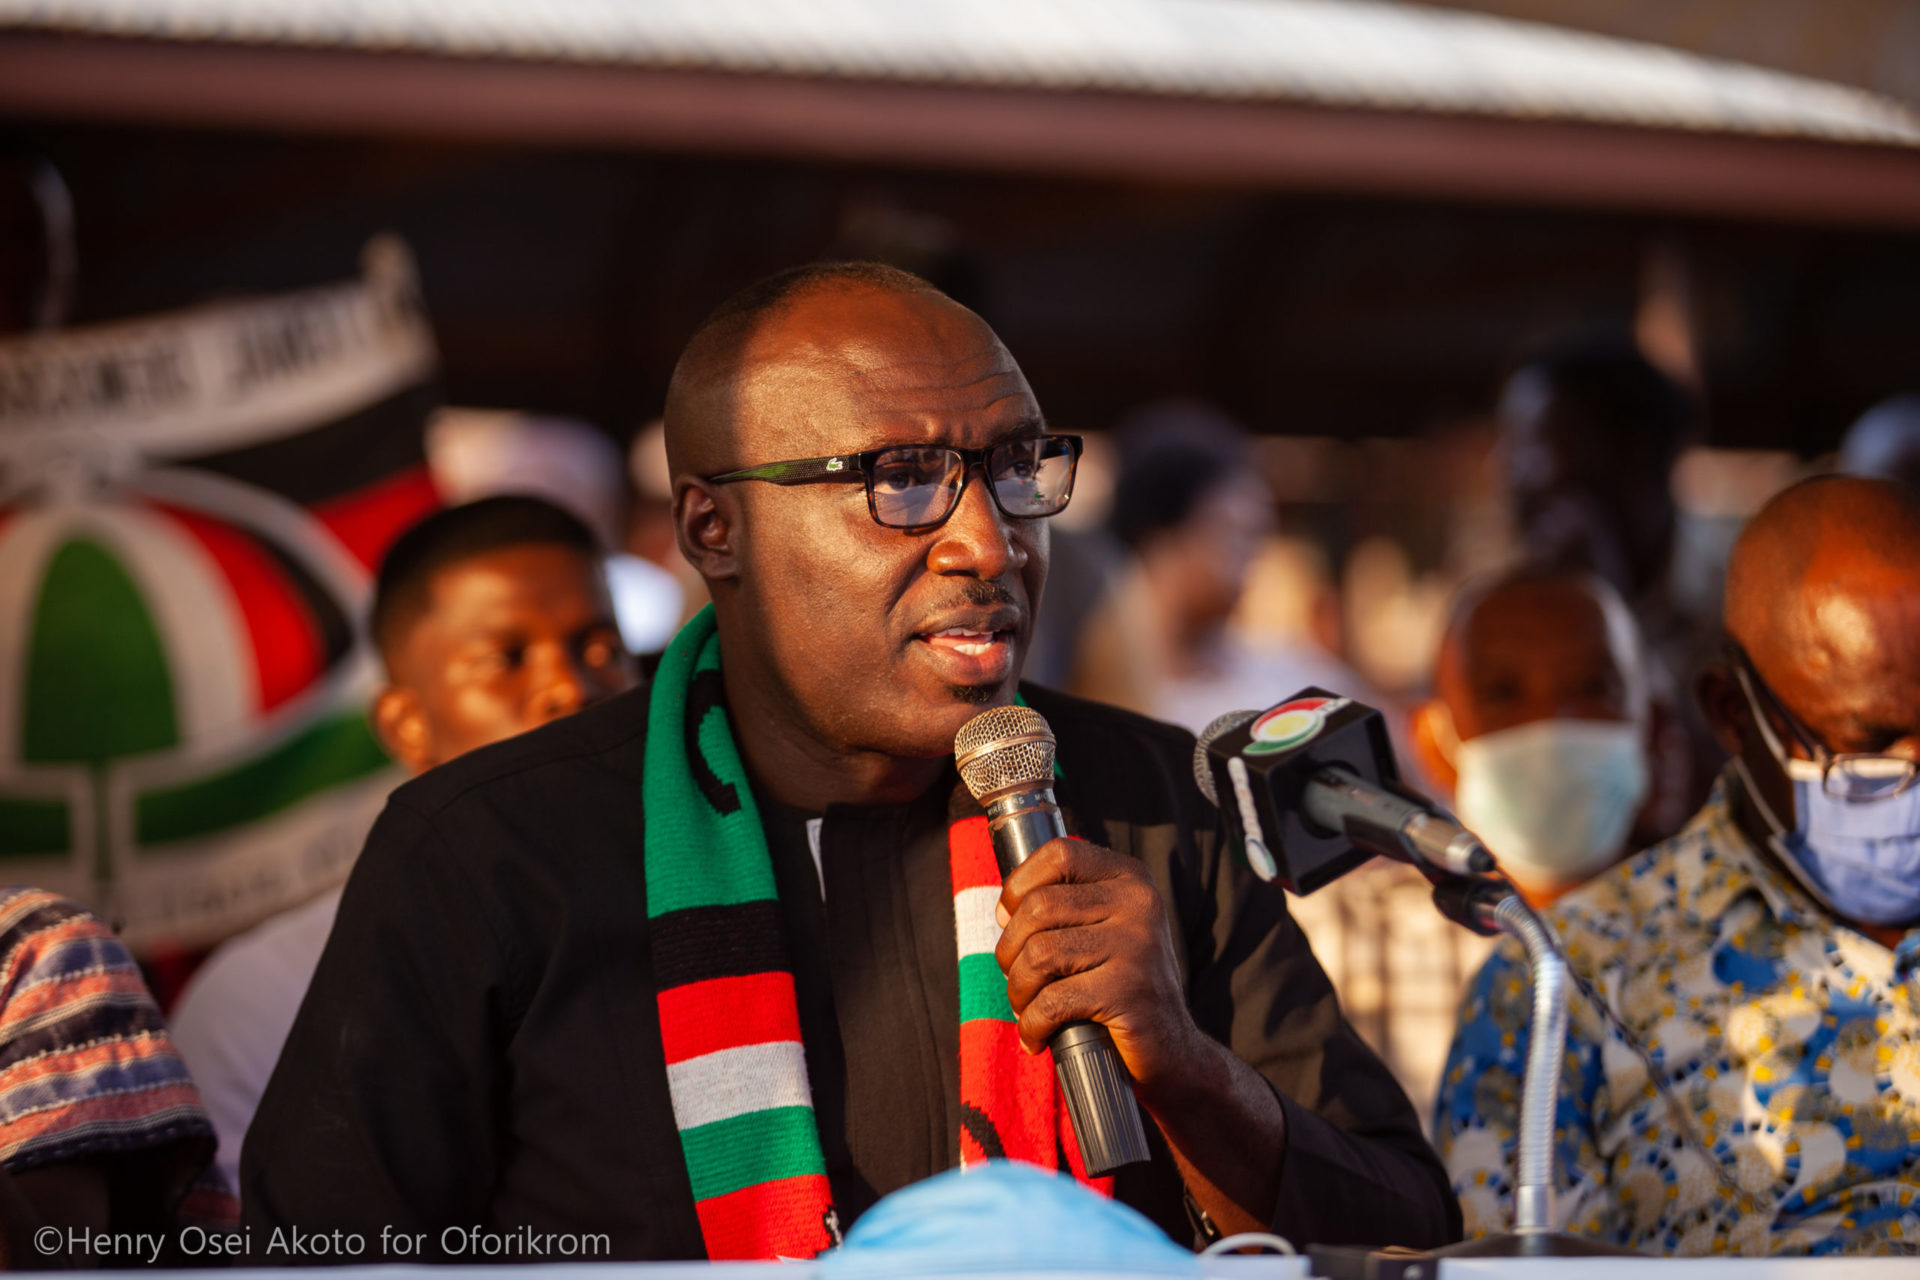 Former NDC PC For Oforikrom Henry Osei Akoto Calls Out Umaru Sanda For Spreading Fake News